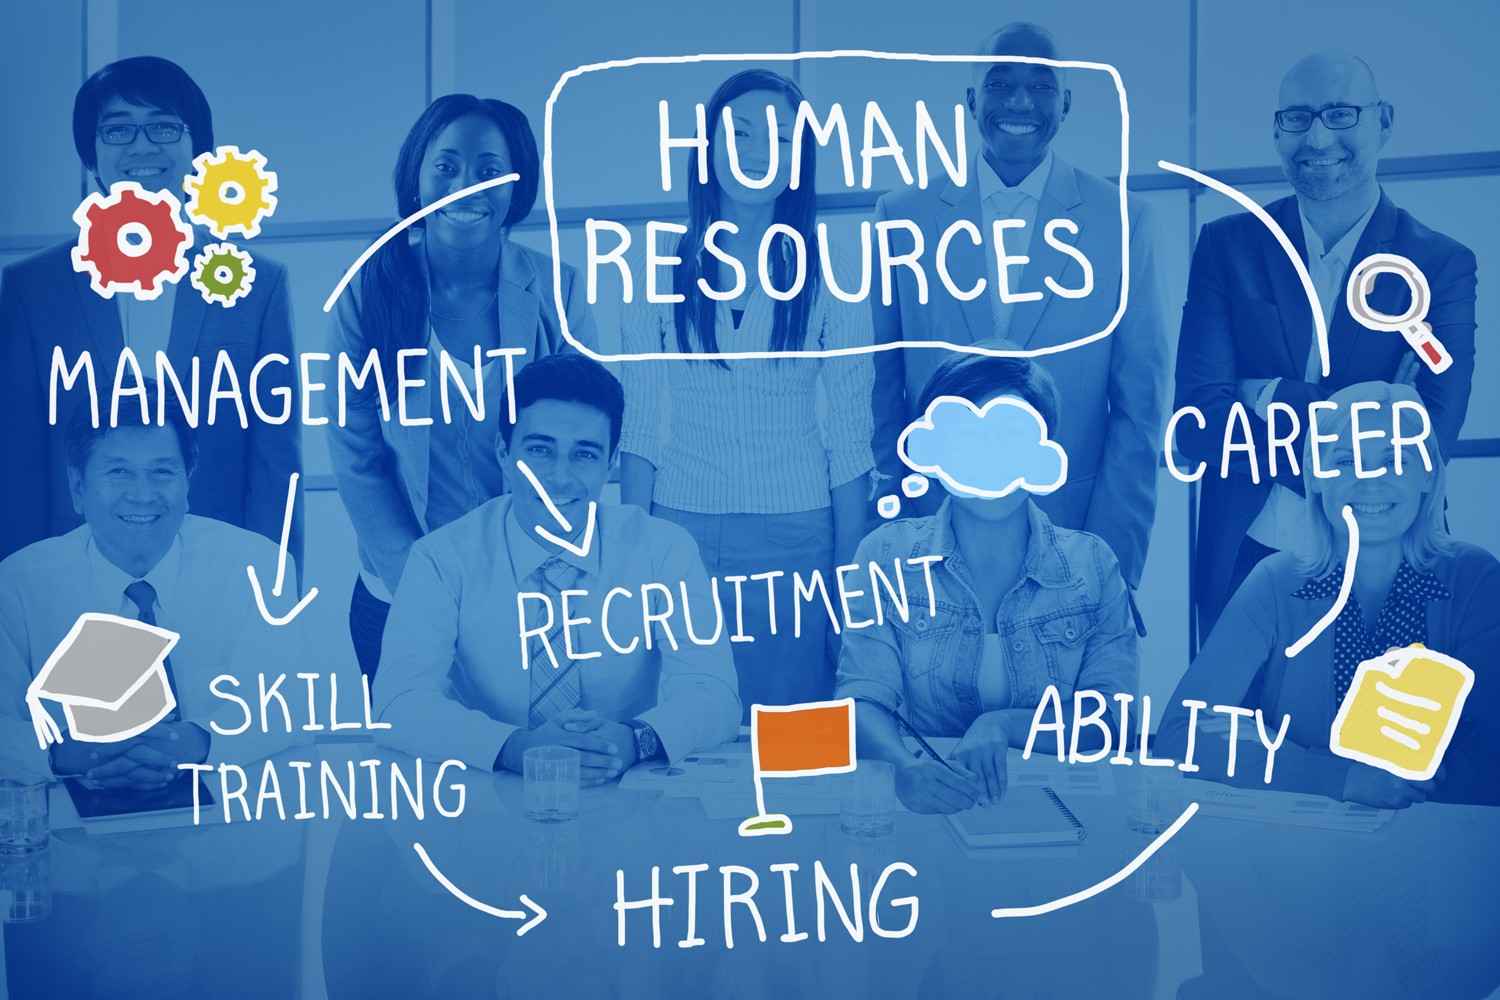 THE POWER OF HUMAN RESOURCES